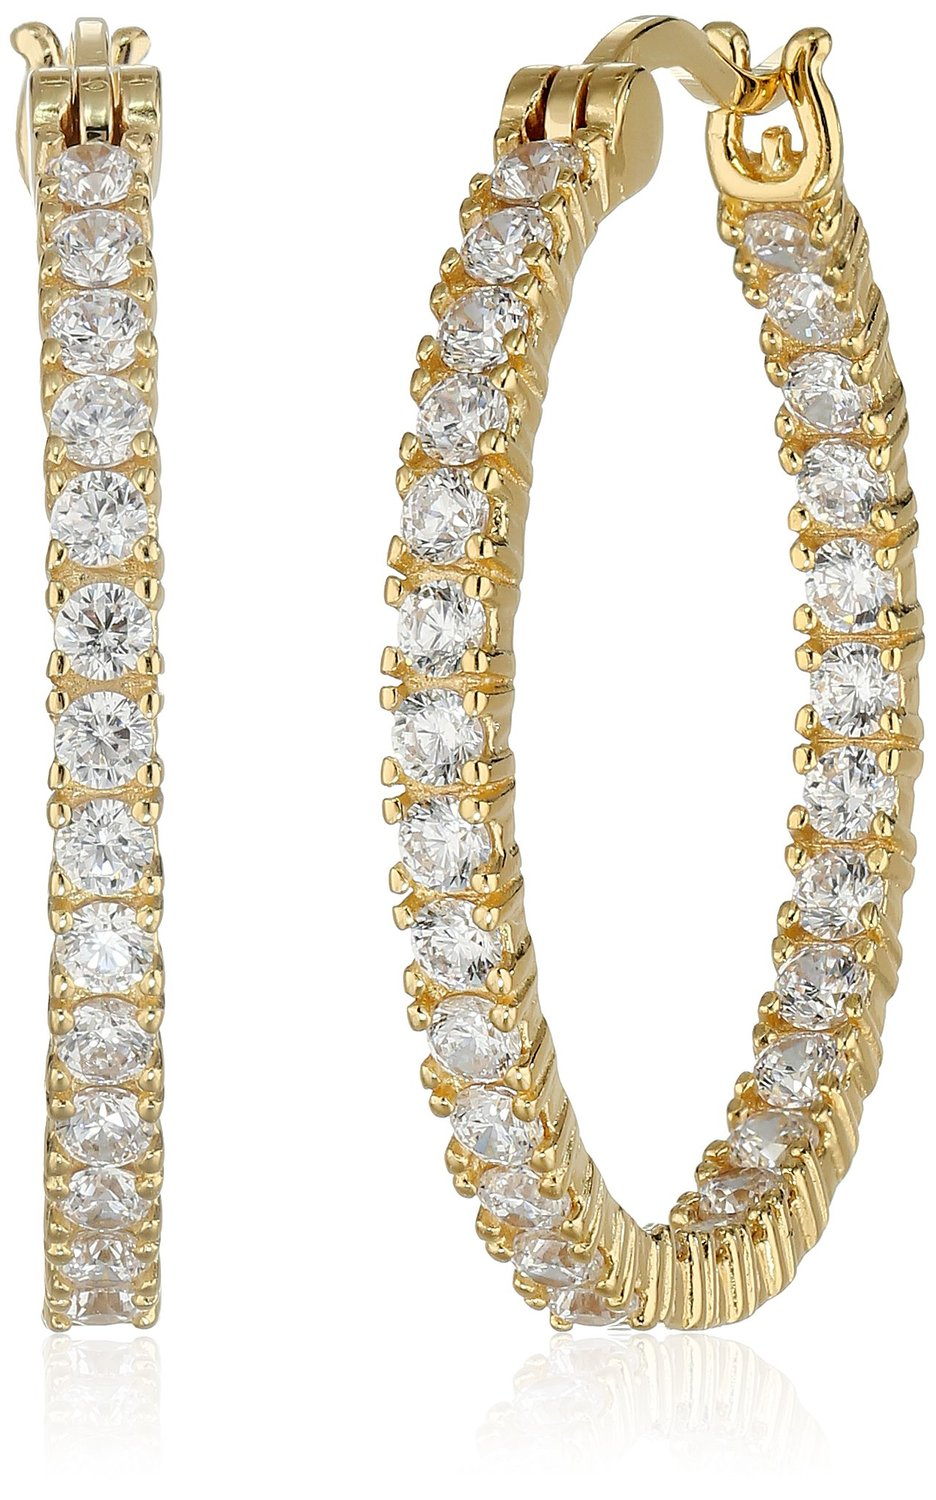 Amazon.com: 18k Yellow Gold Plated Sterling Silver Cubic Zirconia 2mm Hoop Earrings, 1